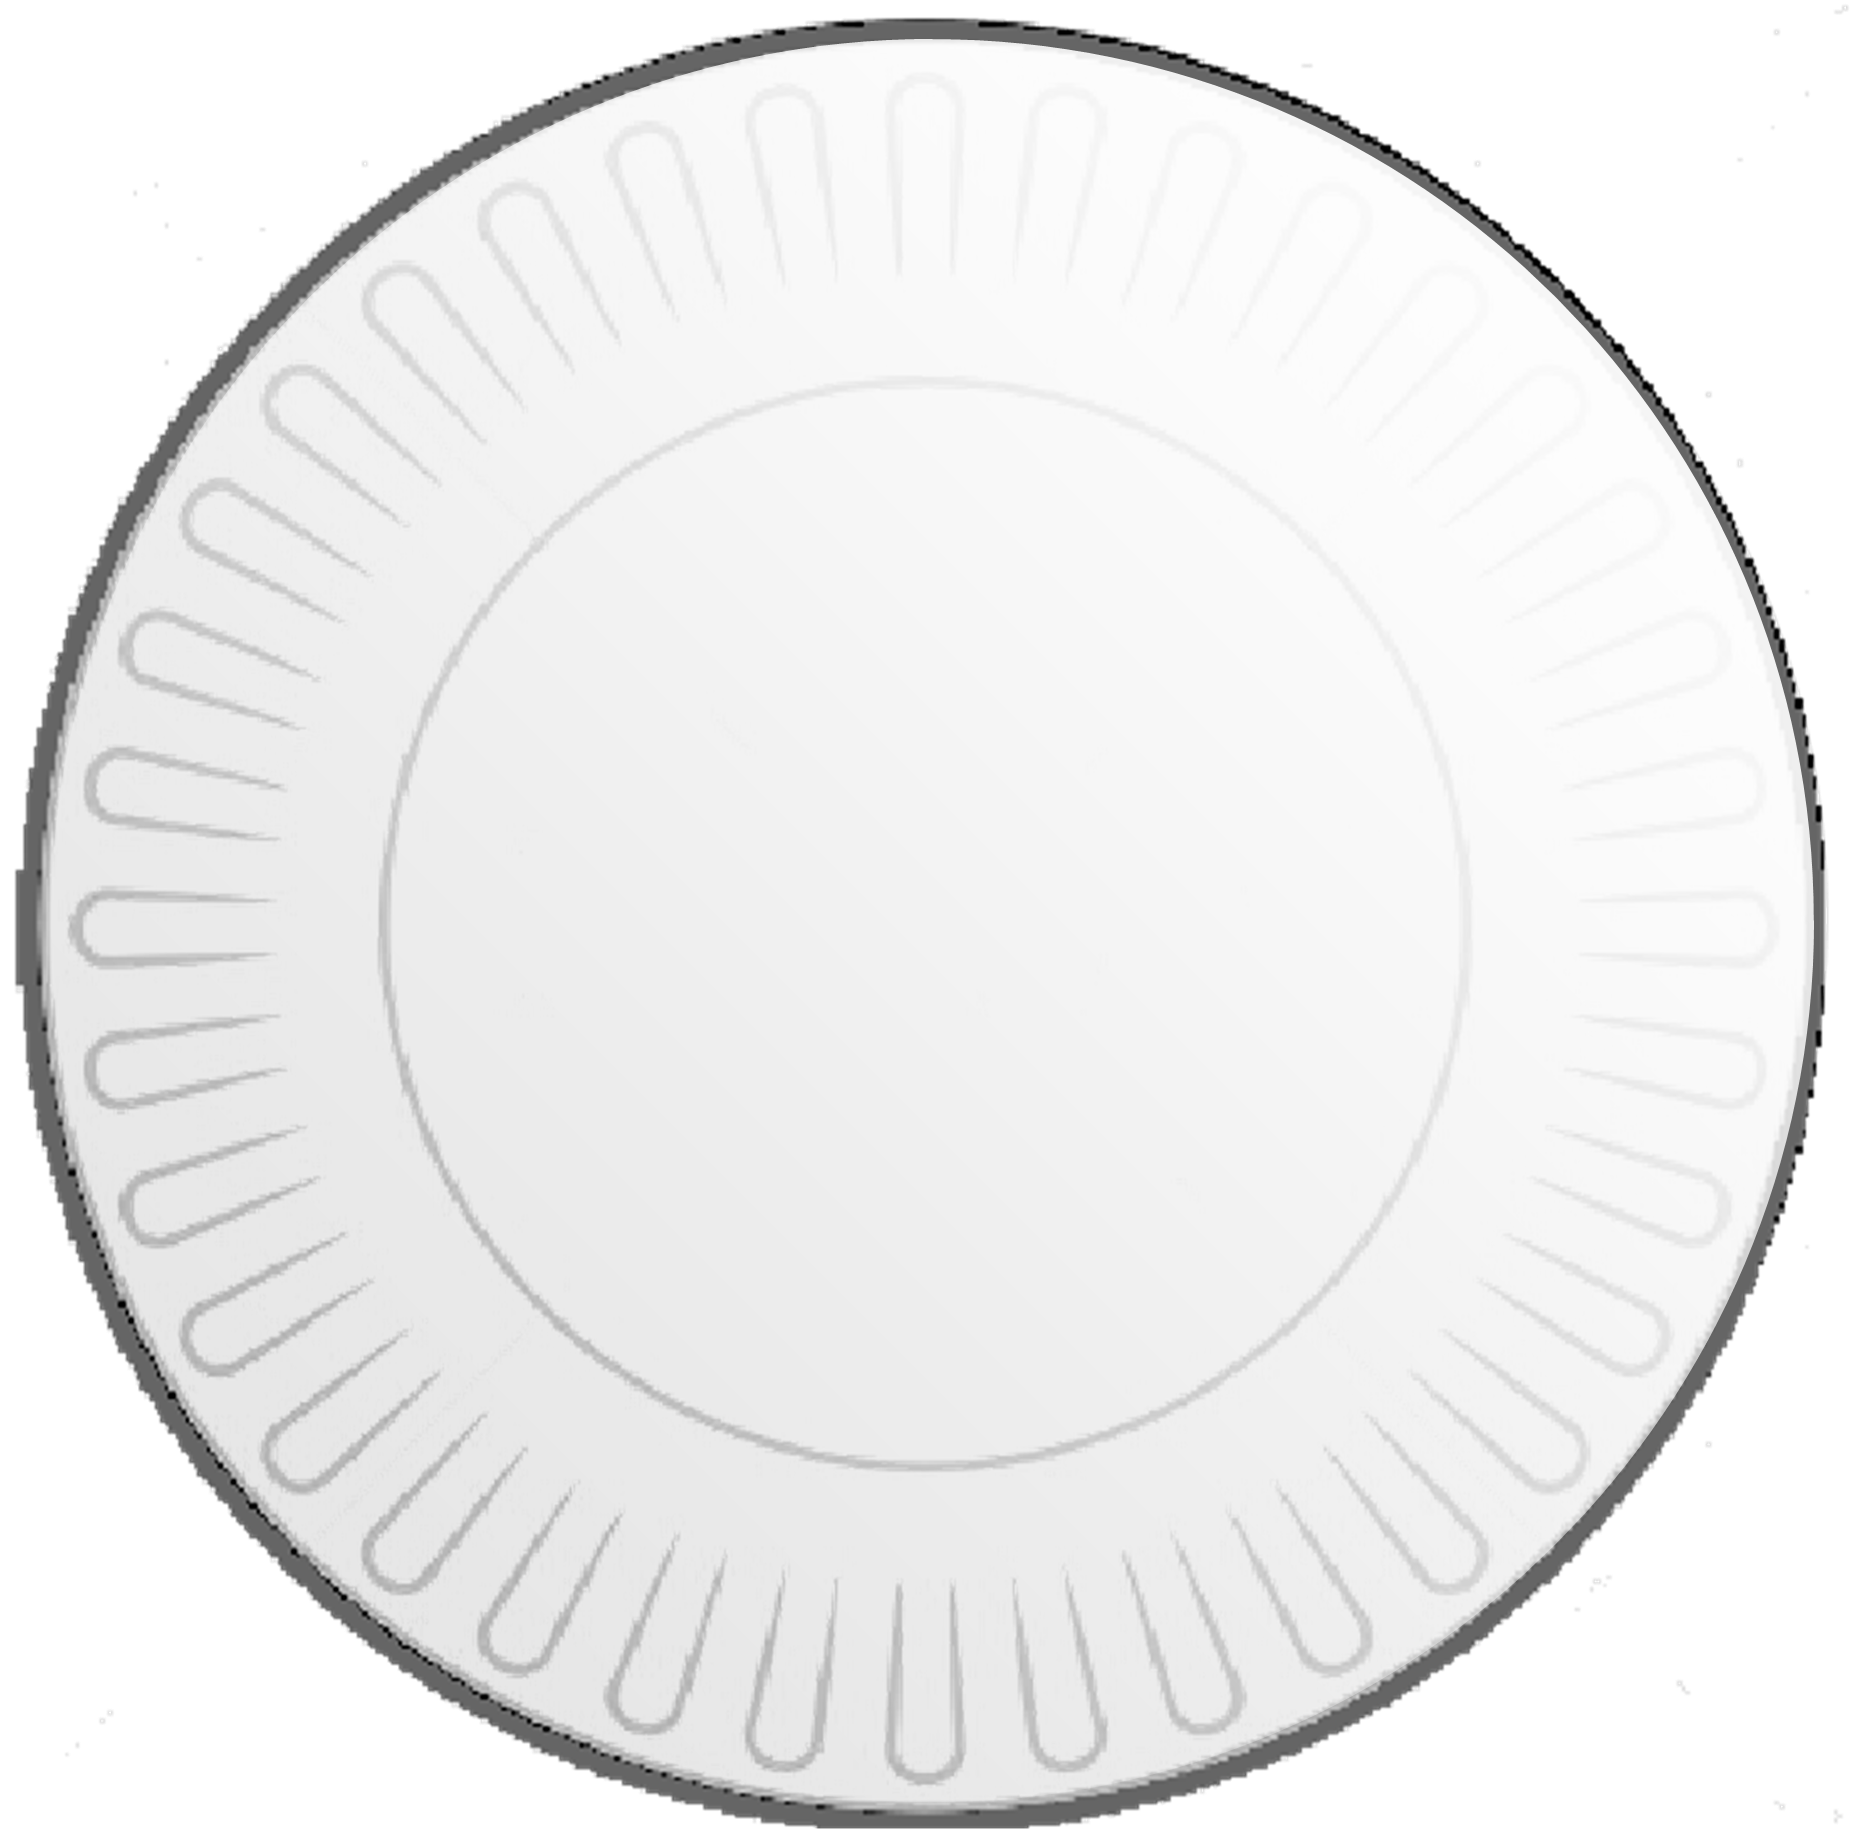 Paper Plate.png  sc 1 st  Super Lifeless Object Battle Wikia - Fandom & Image - Paper Plate.png | Super Lifeless Object Battle Wikia ...